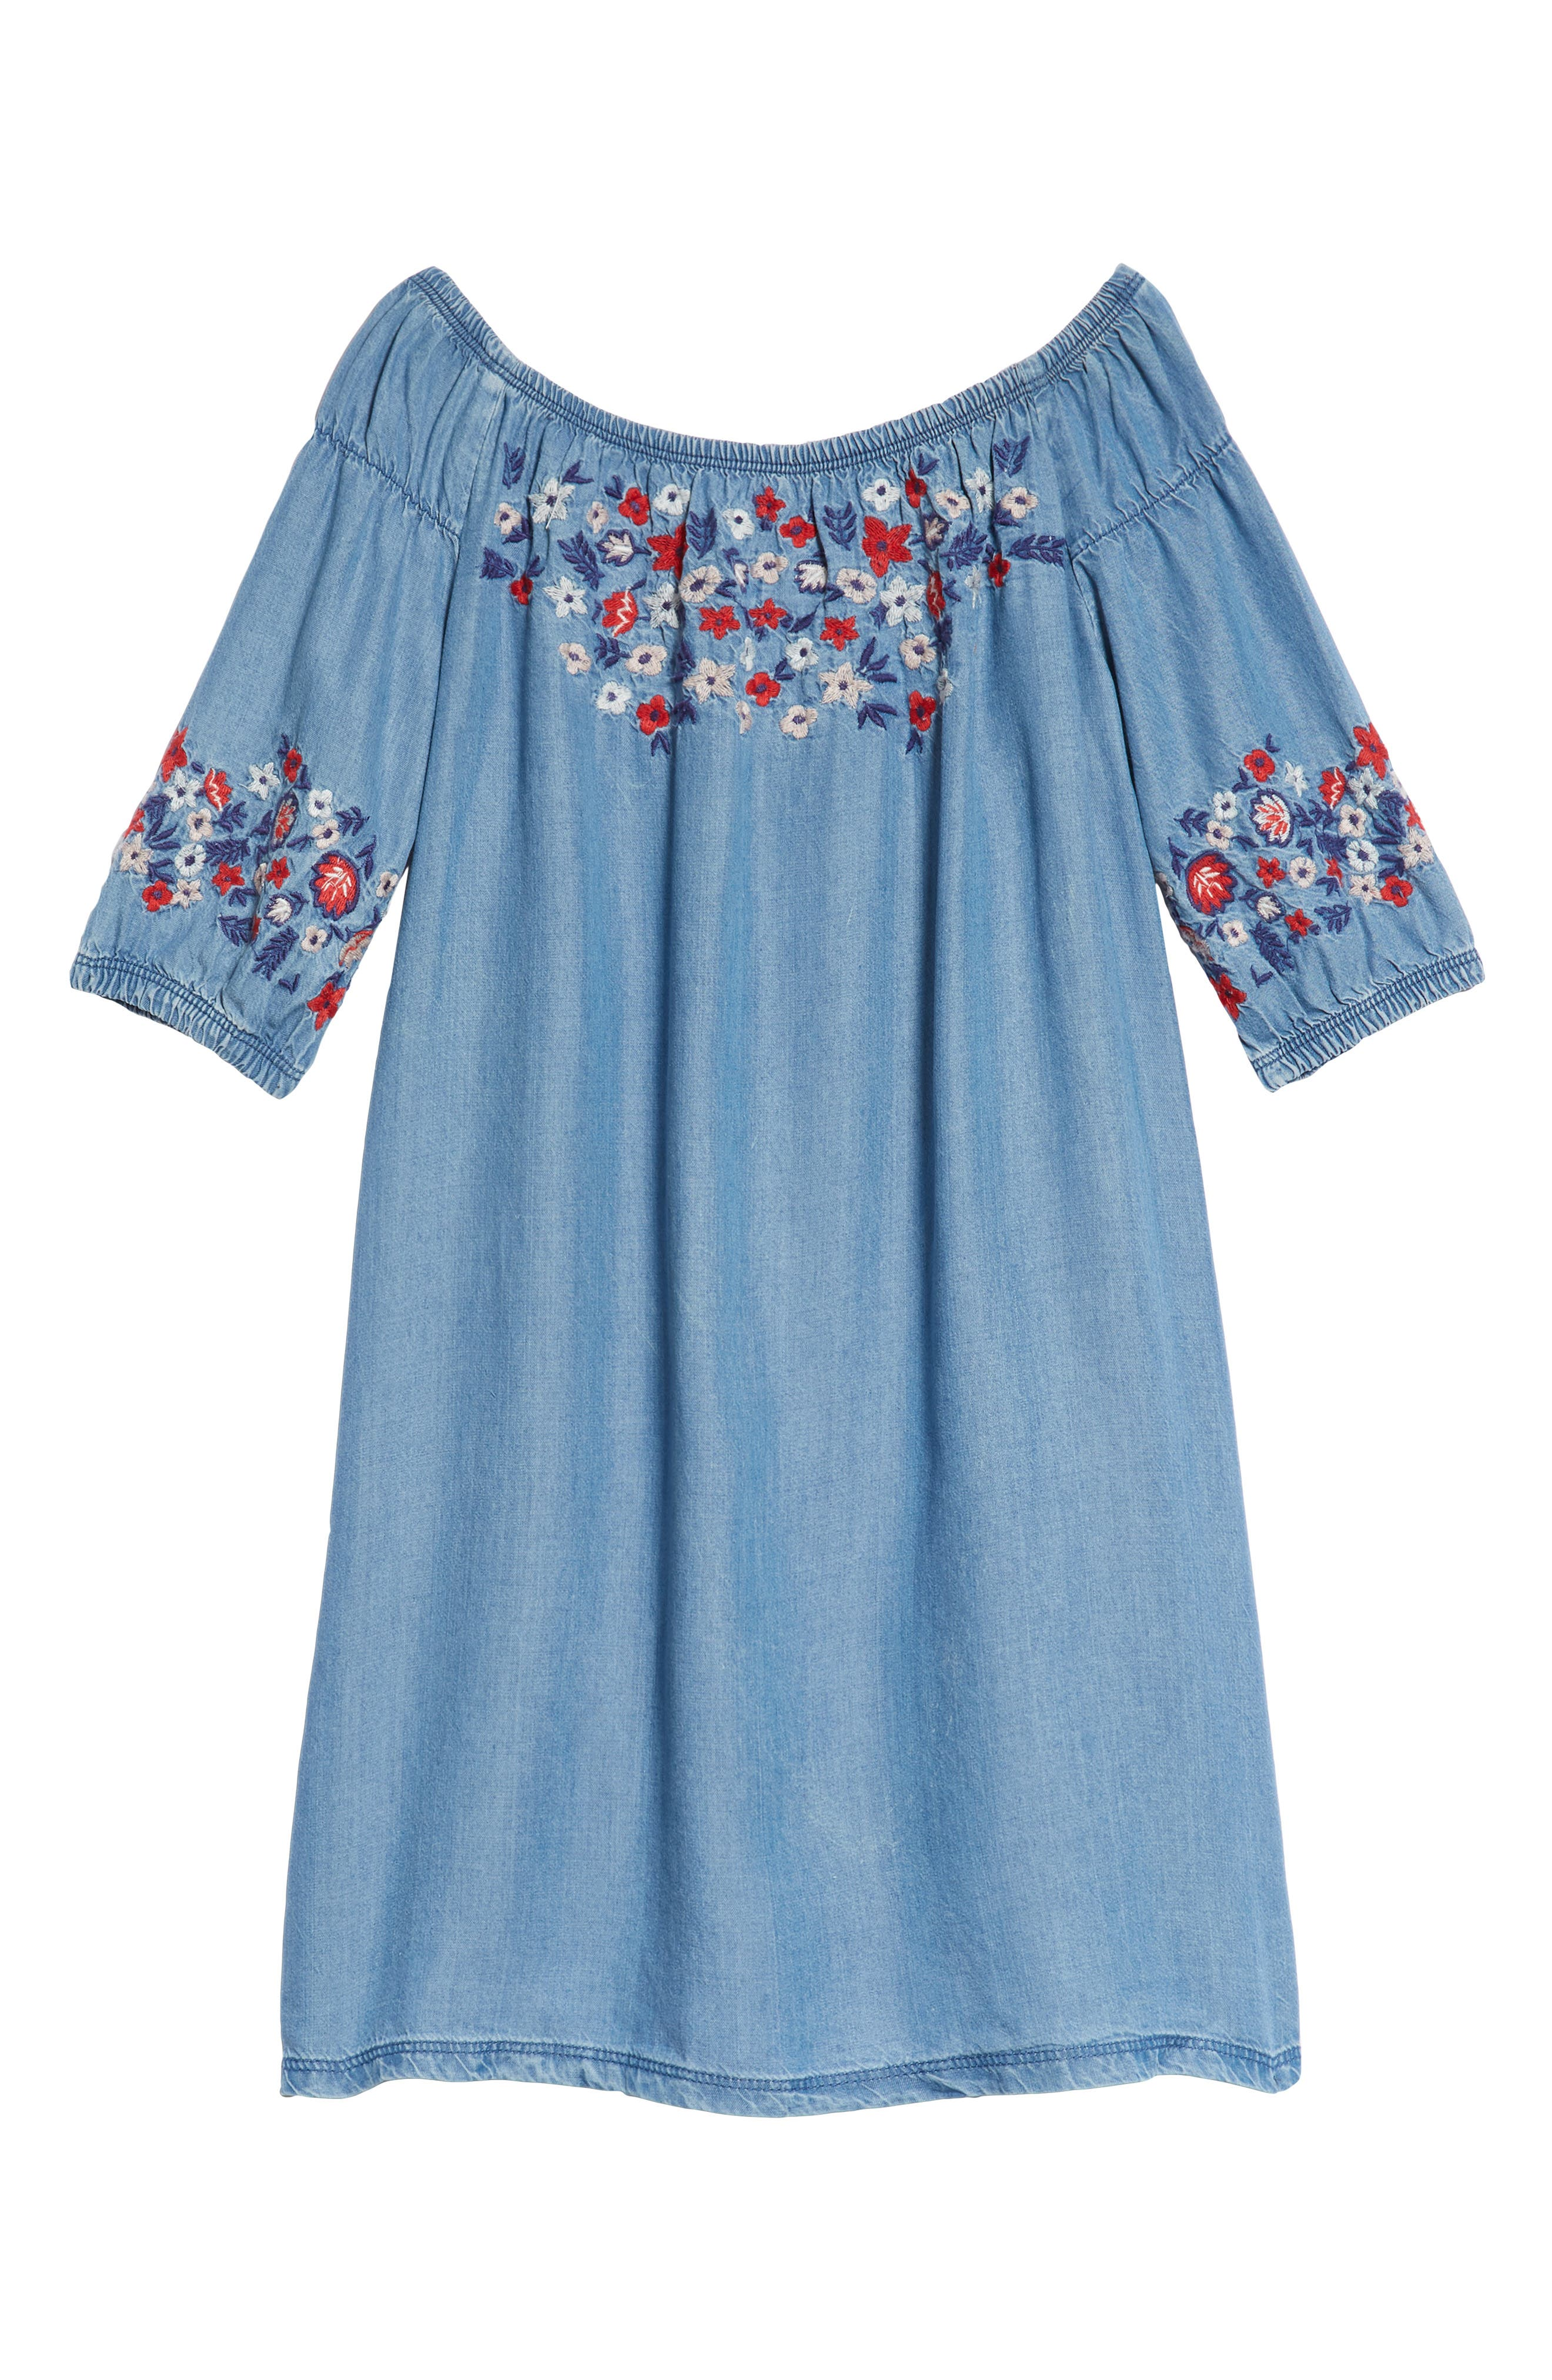 Flower Embroidered Off-the-Shoulder Dress,                             Main thumbnail 1, color,                             420